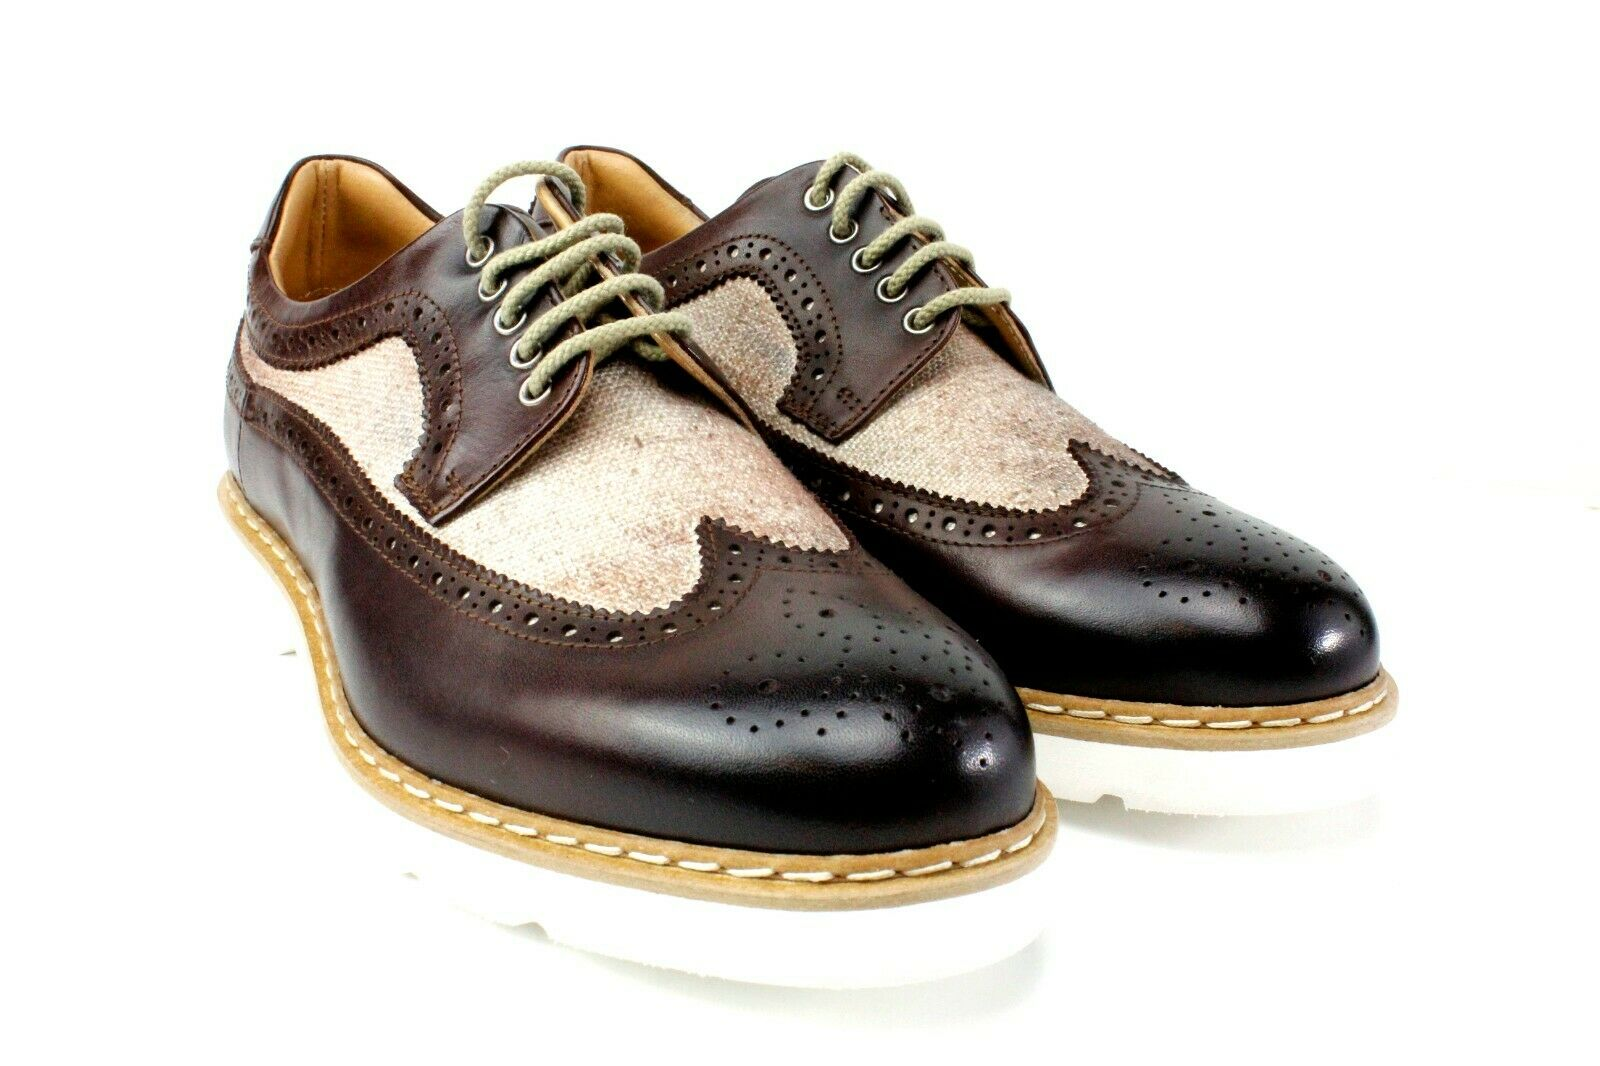 IVAN TROY Steve Brown Handmade Italian Leather Dress shoes Oxford Office shoes